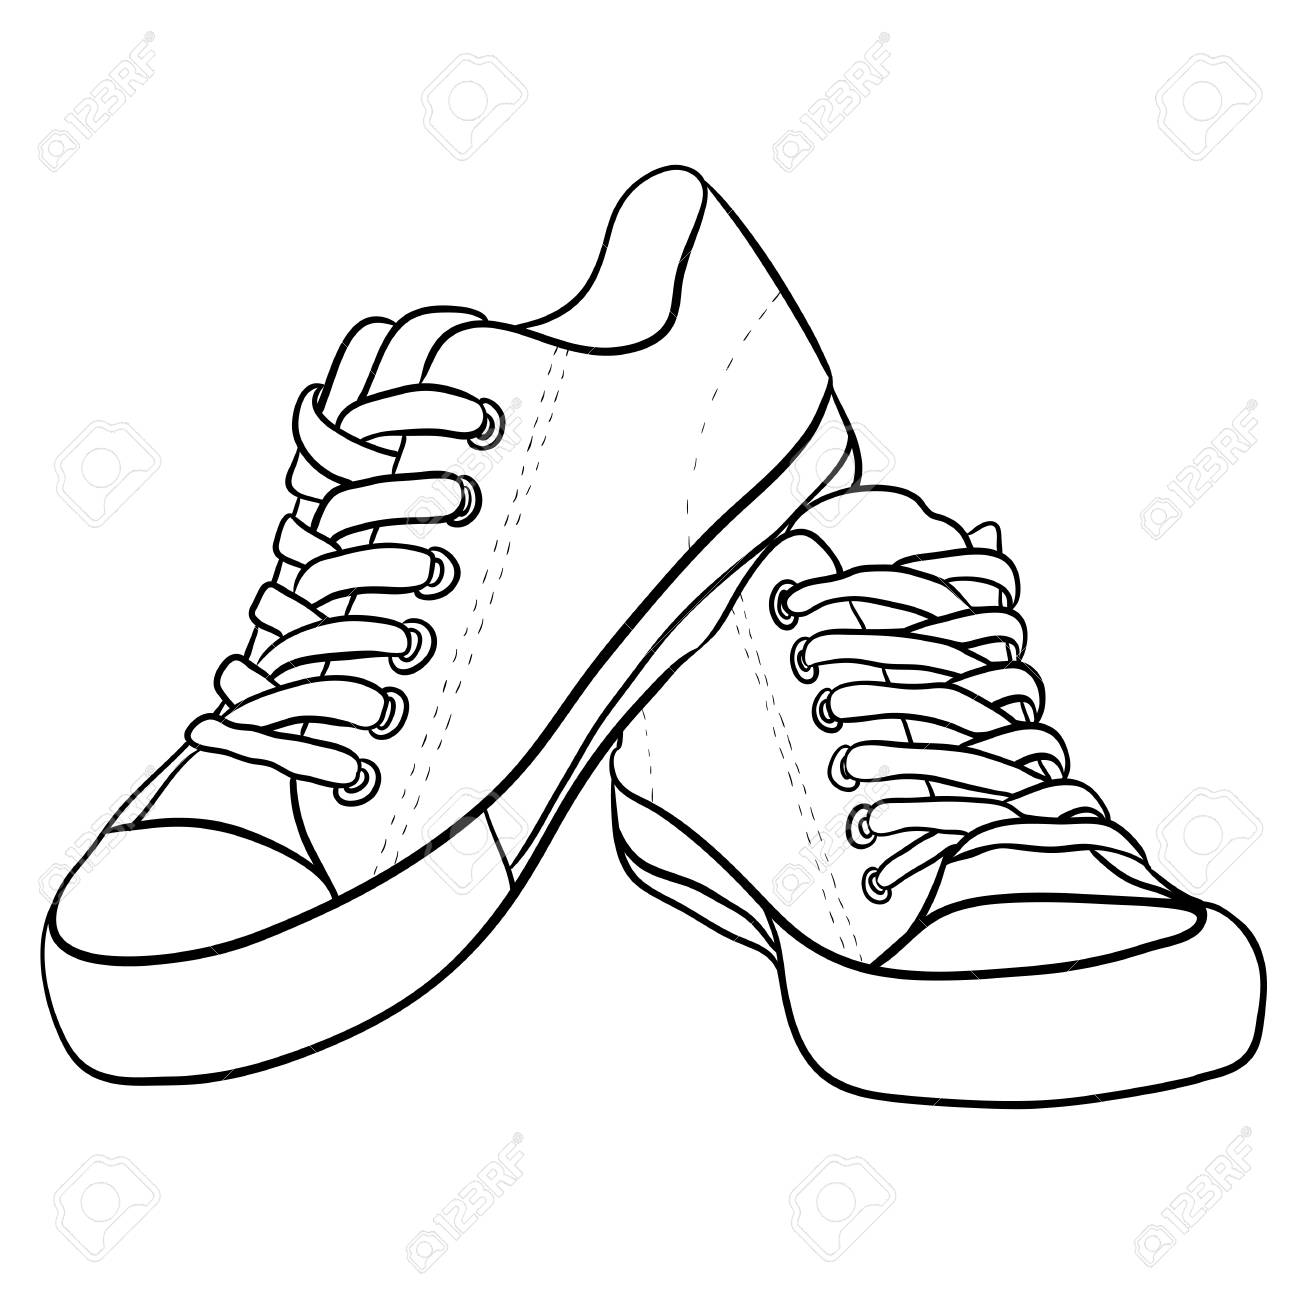 Contour black and white illustration of sneakers. Vector element for your creativity - 86208103